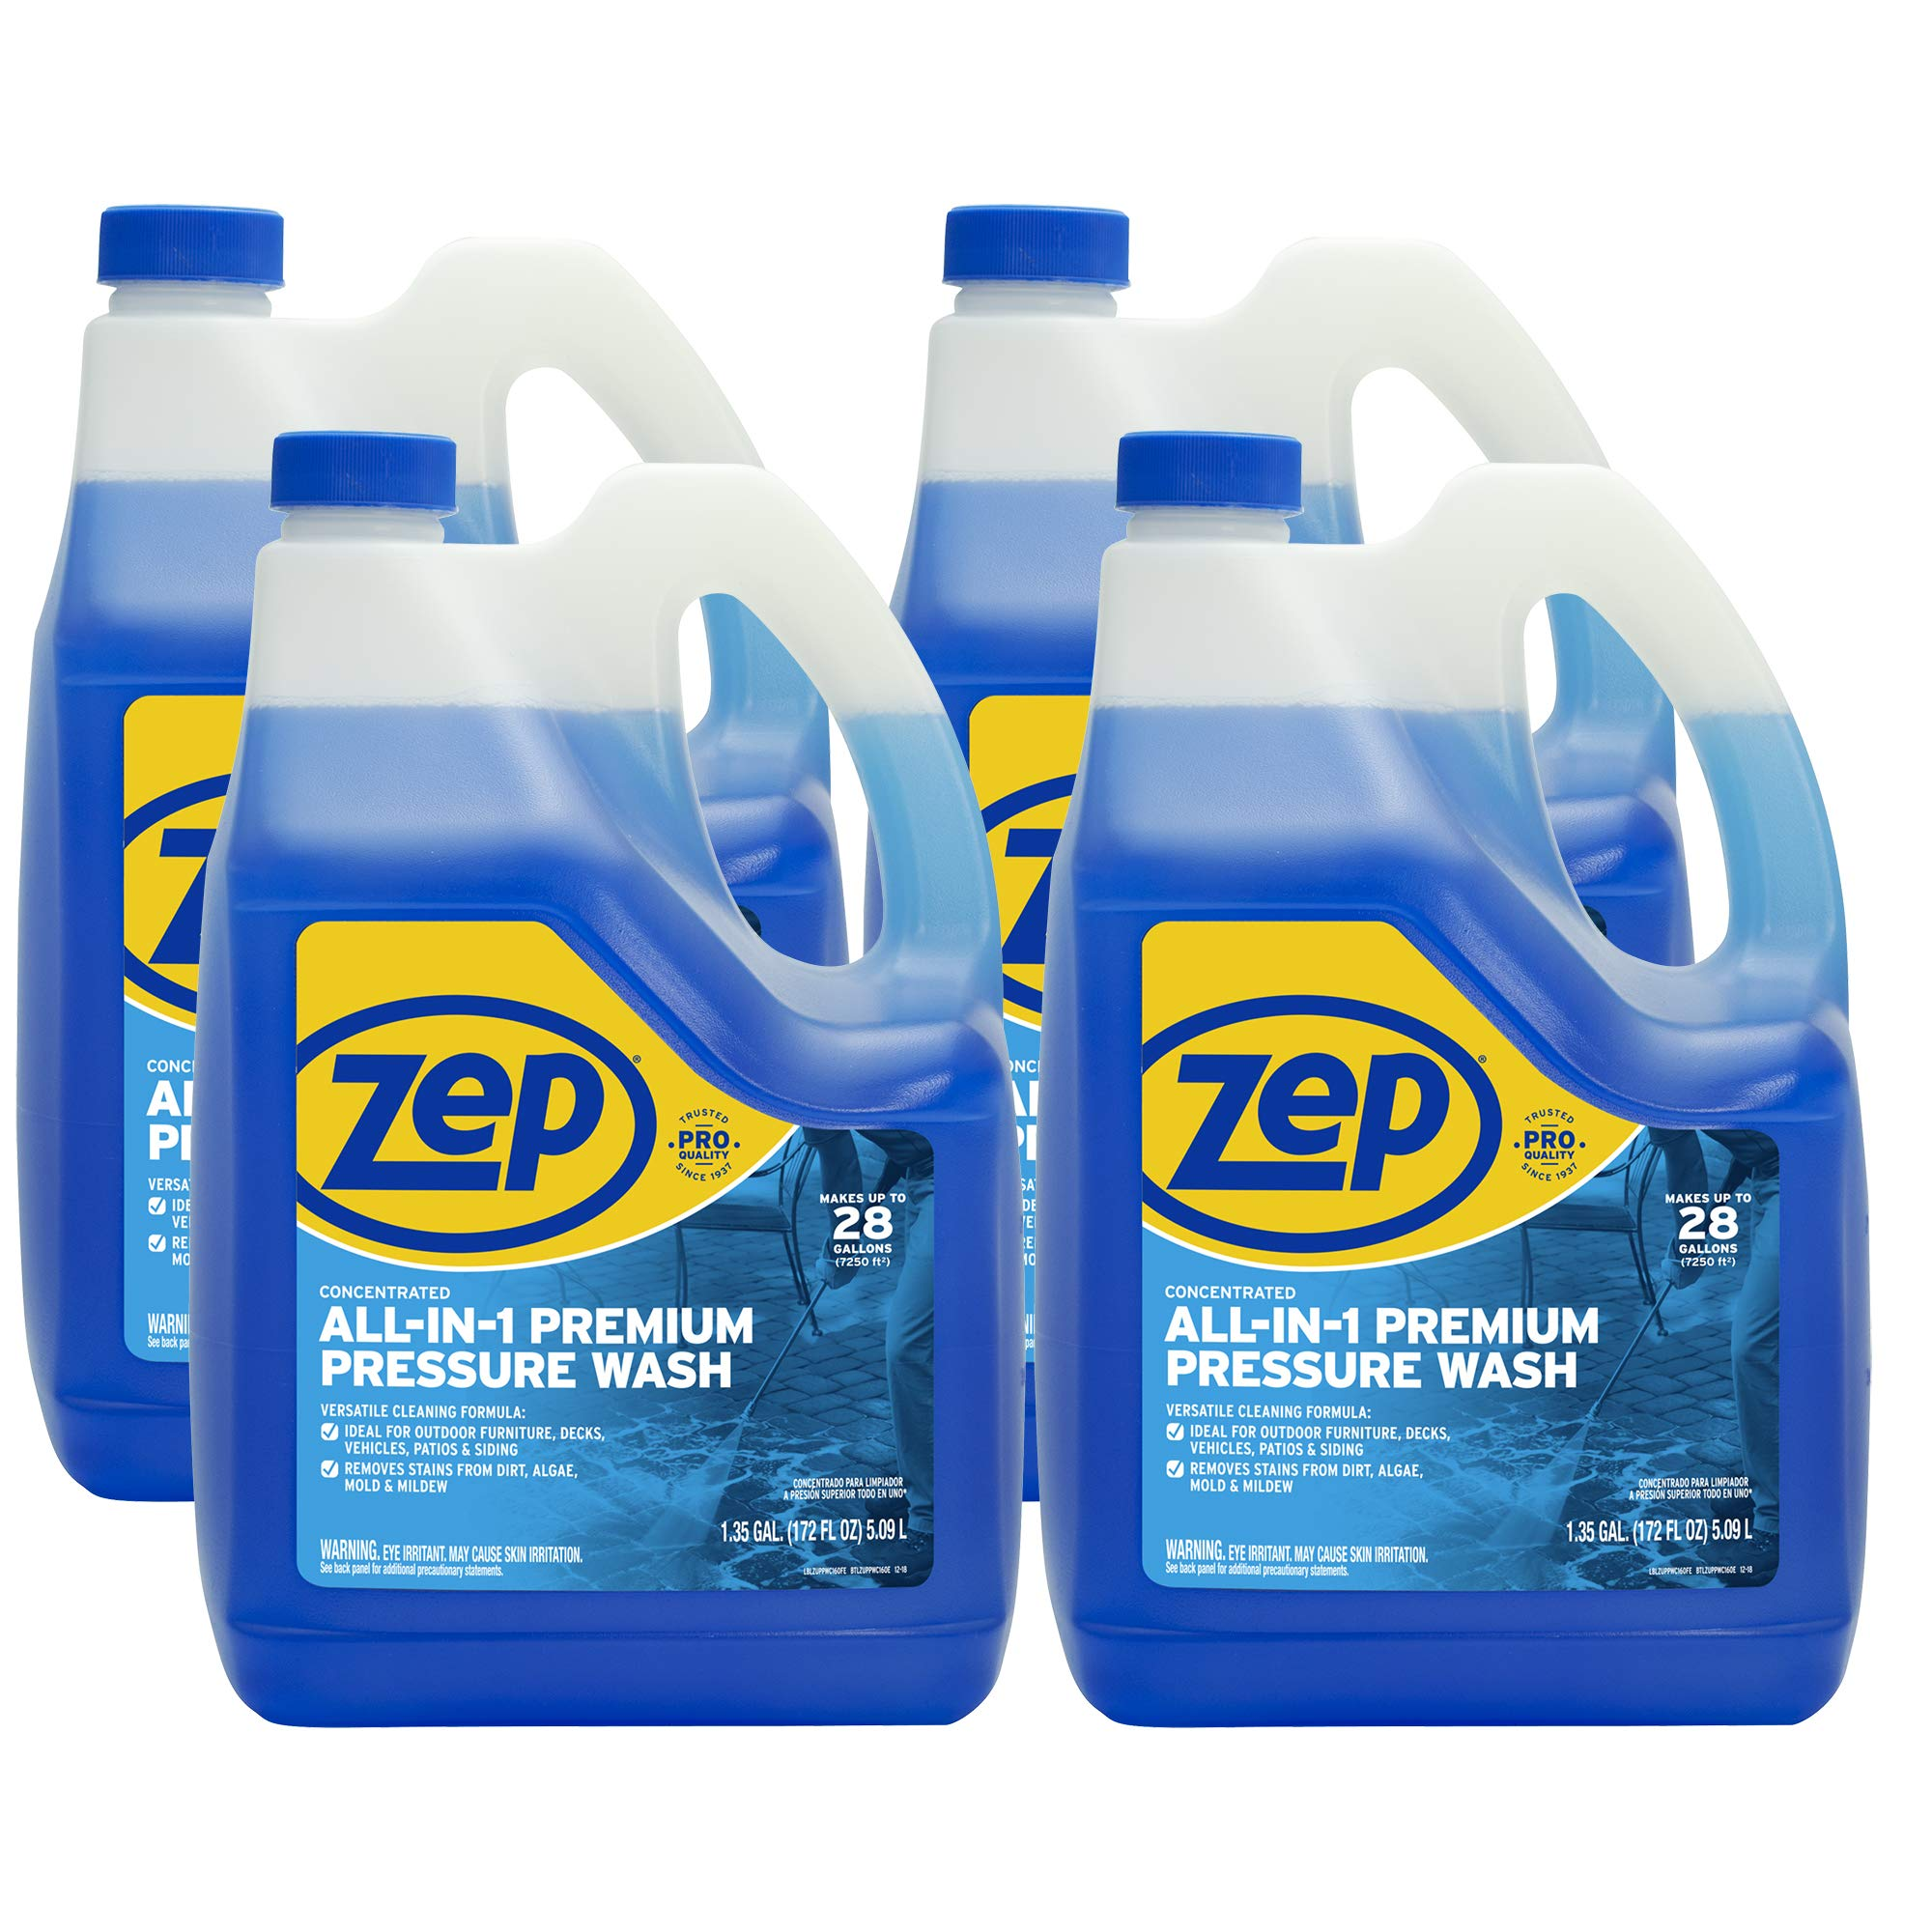 Zep All-in-1 Pressure Wash Cleaner ZUPPWC160 (CASE of 4) Concentrated Pro Formula